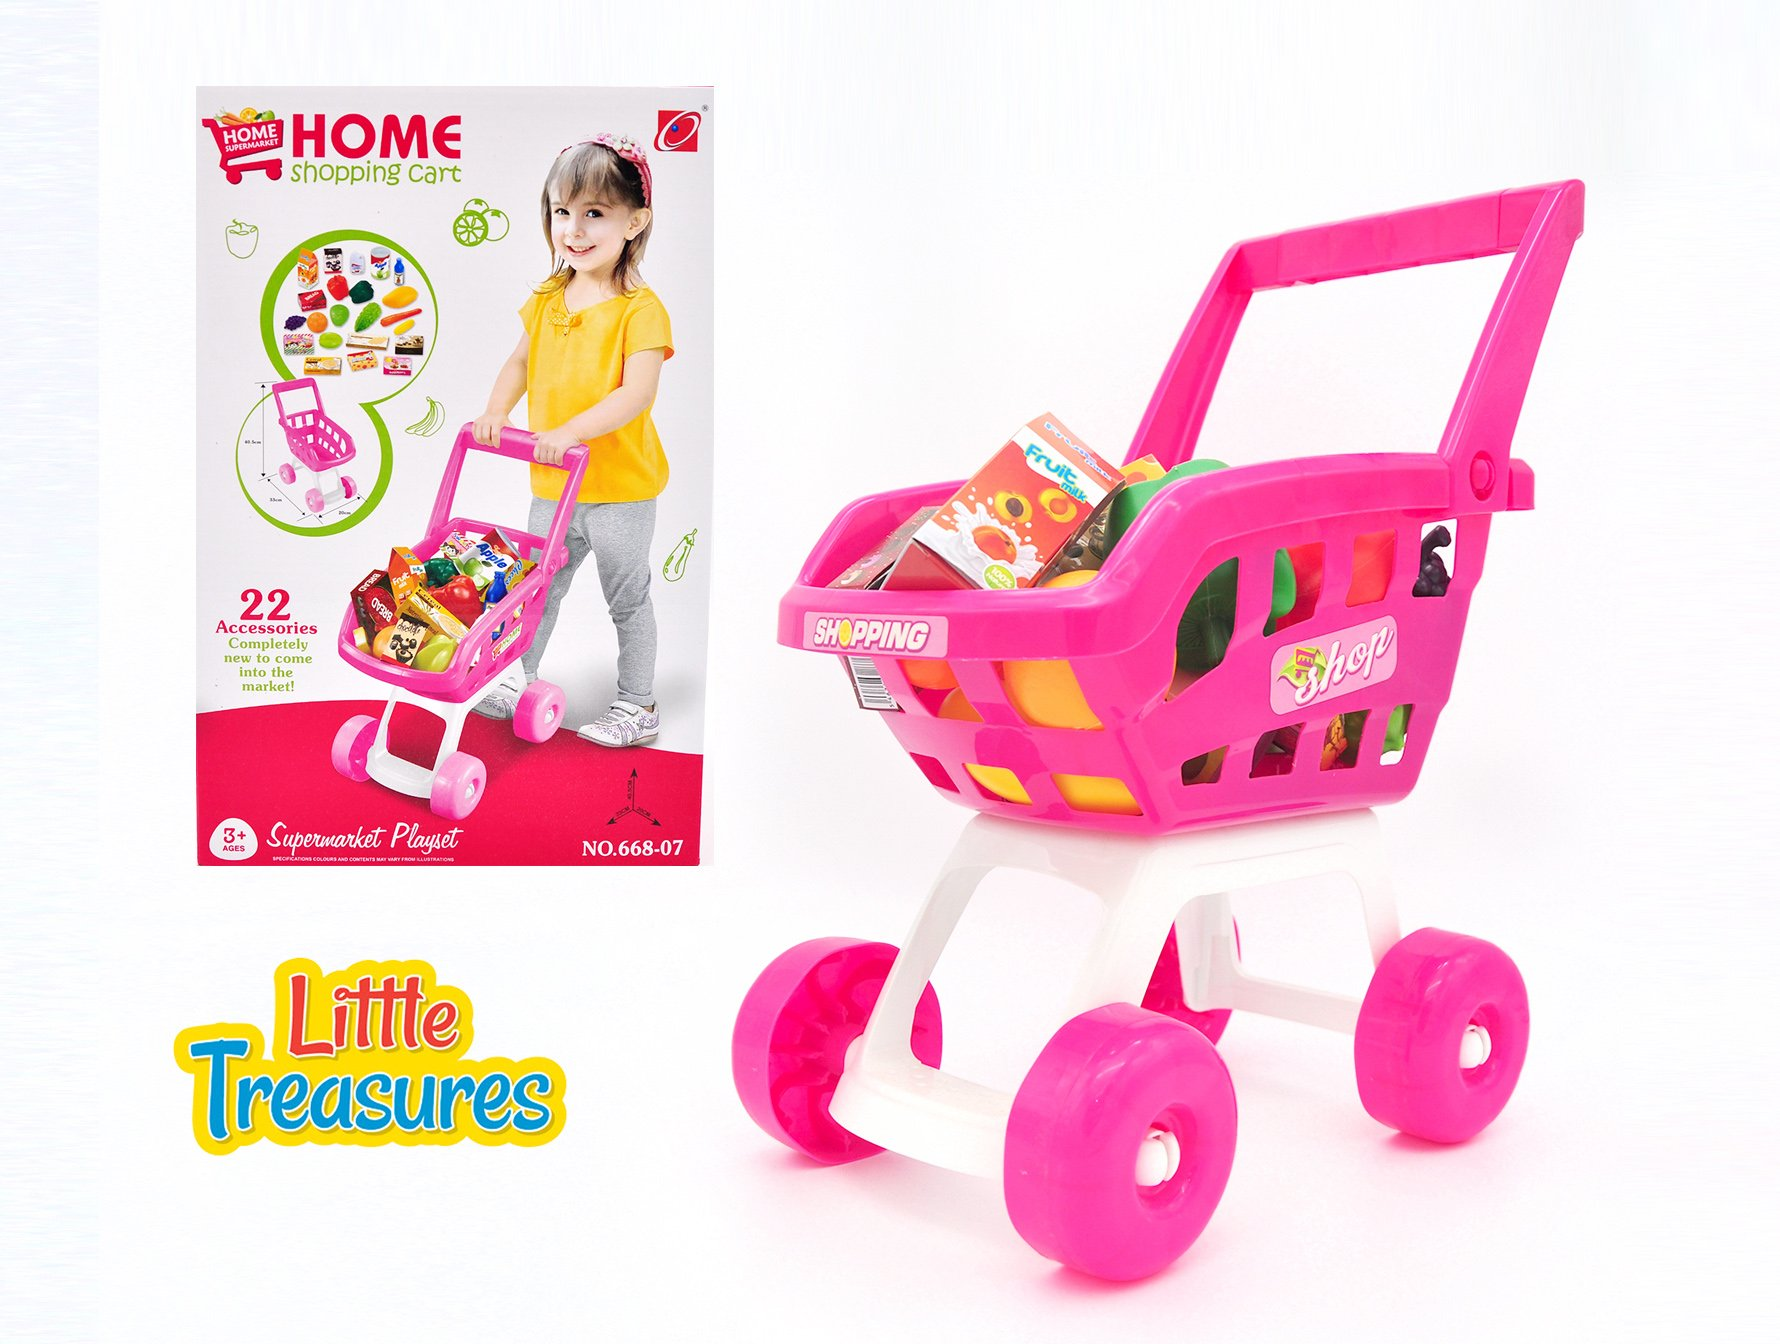 Home Shopping Cart 22-pieced educational fun game for kids 3+ easily movable, handy shopping trolley basket with various toy items including fruits, vegetables, milk carton, cheese box, and more!